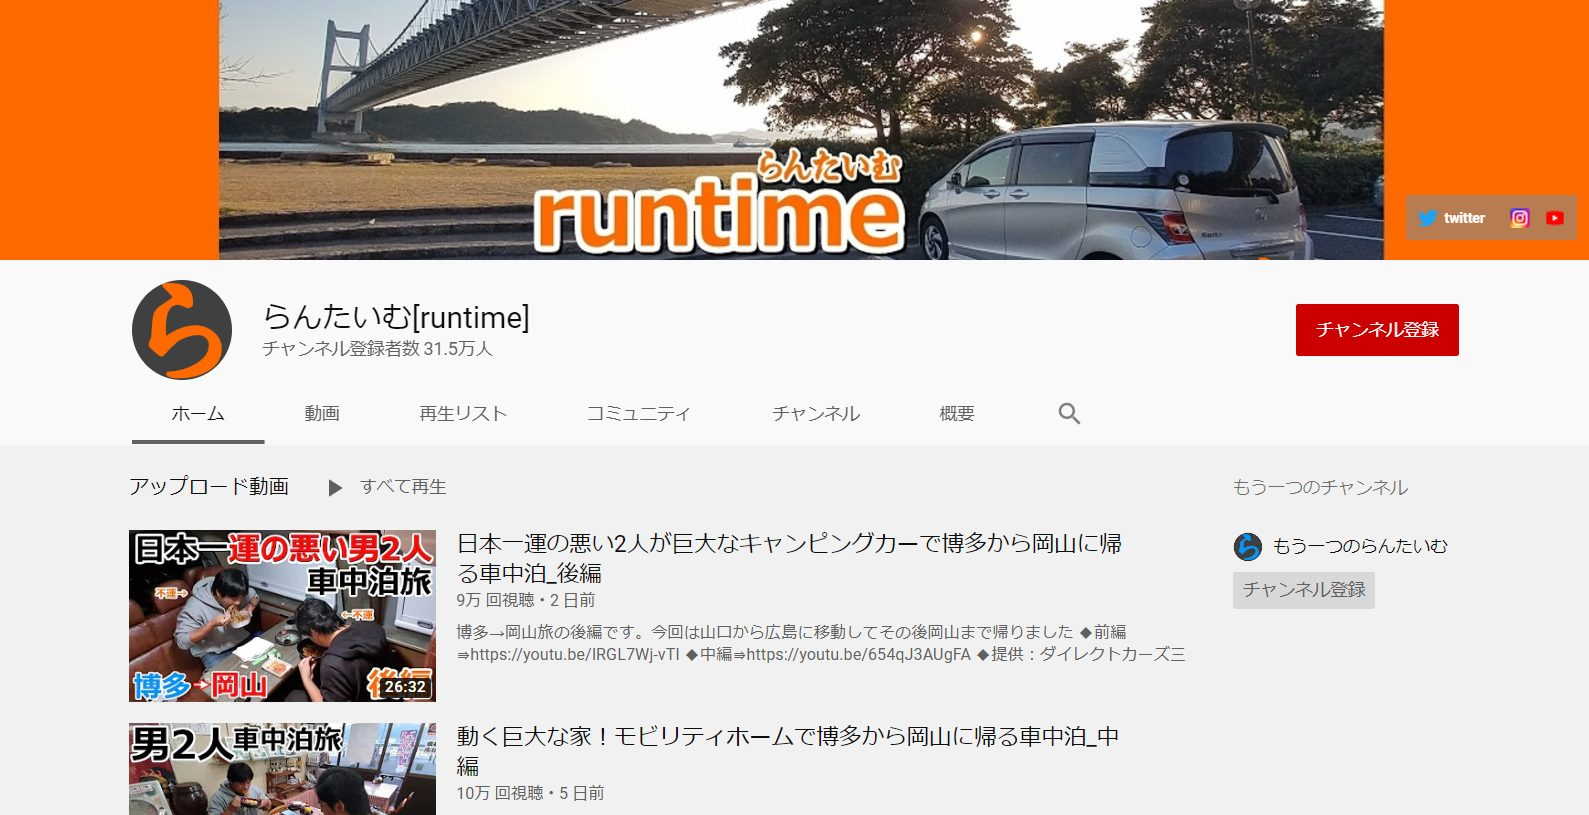 youtube-travel-influencer-runtime